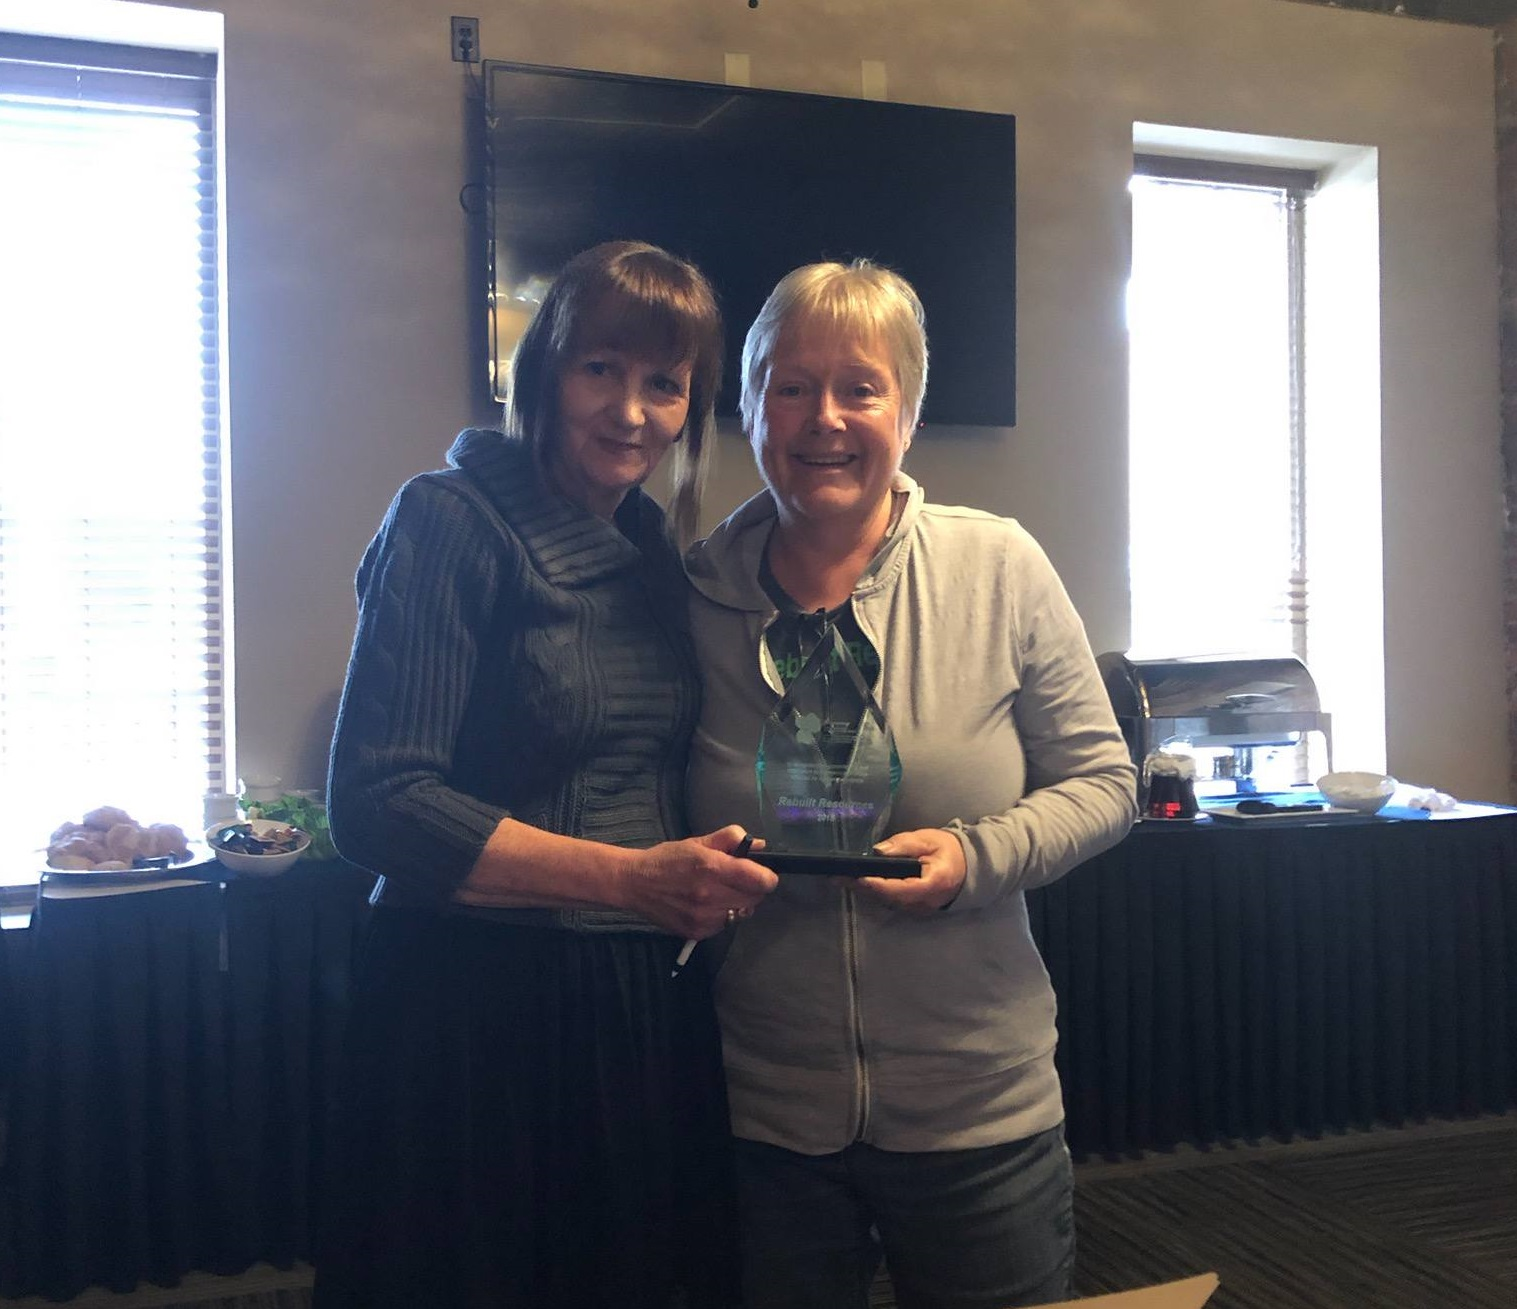 Award for service of those affected by intimate partner violence presented